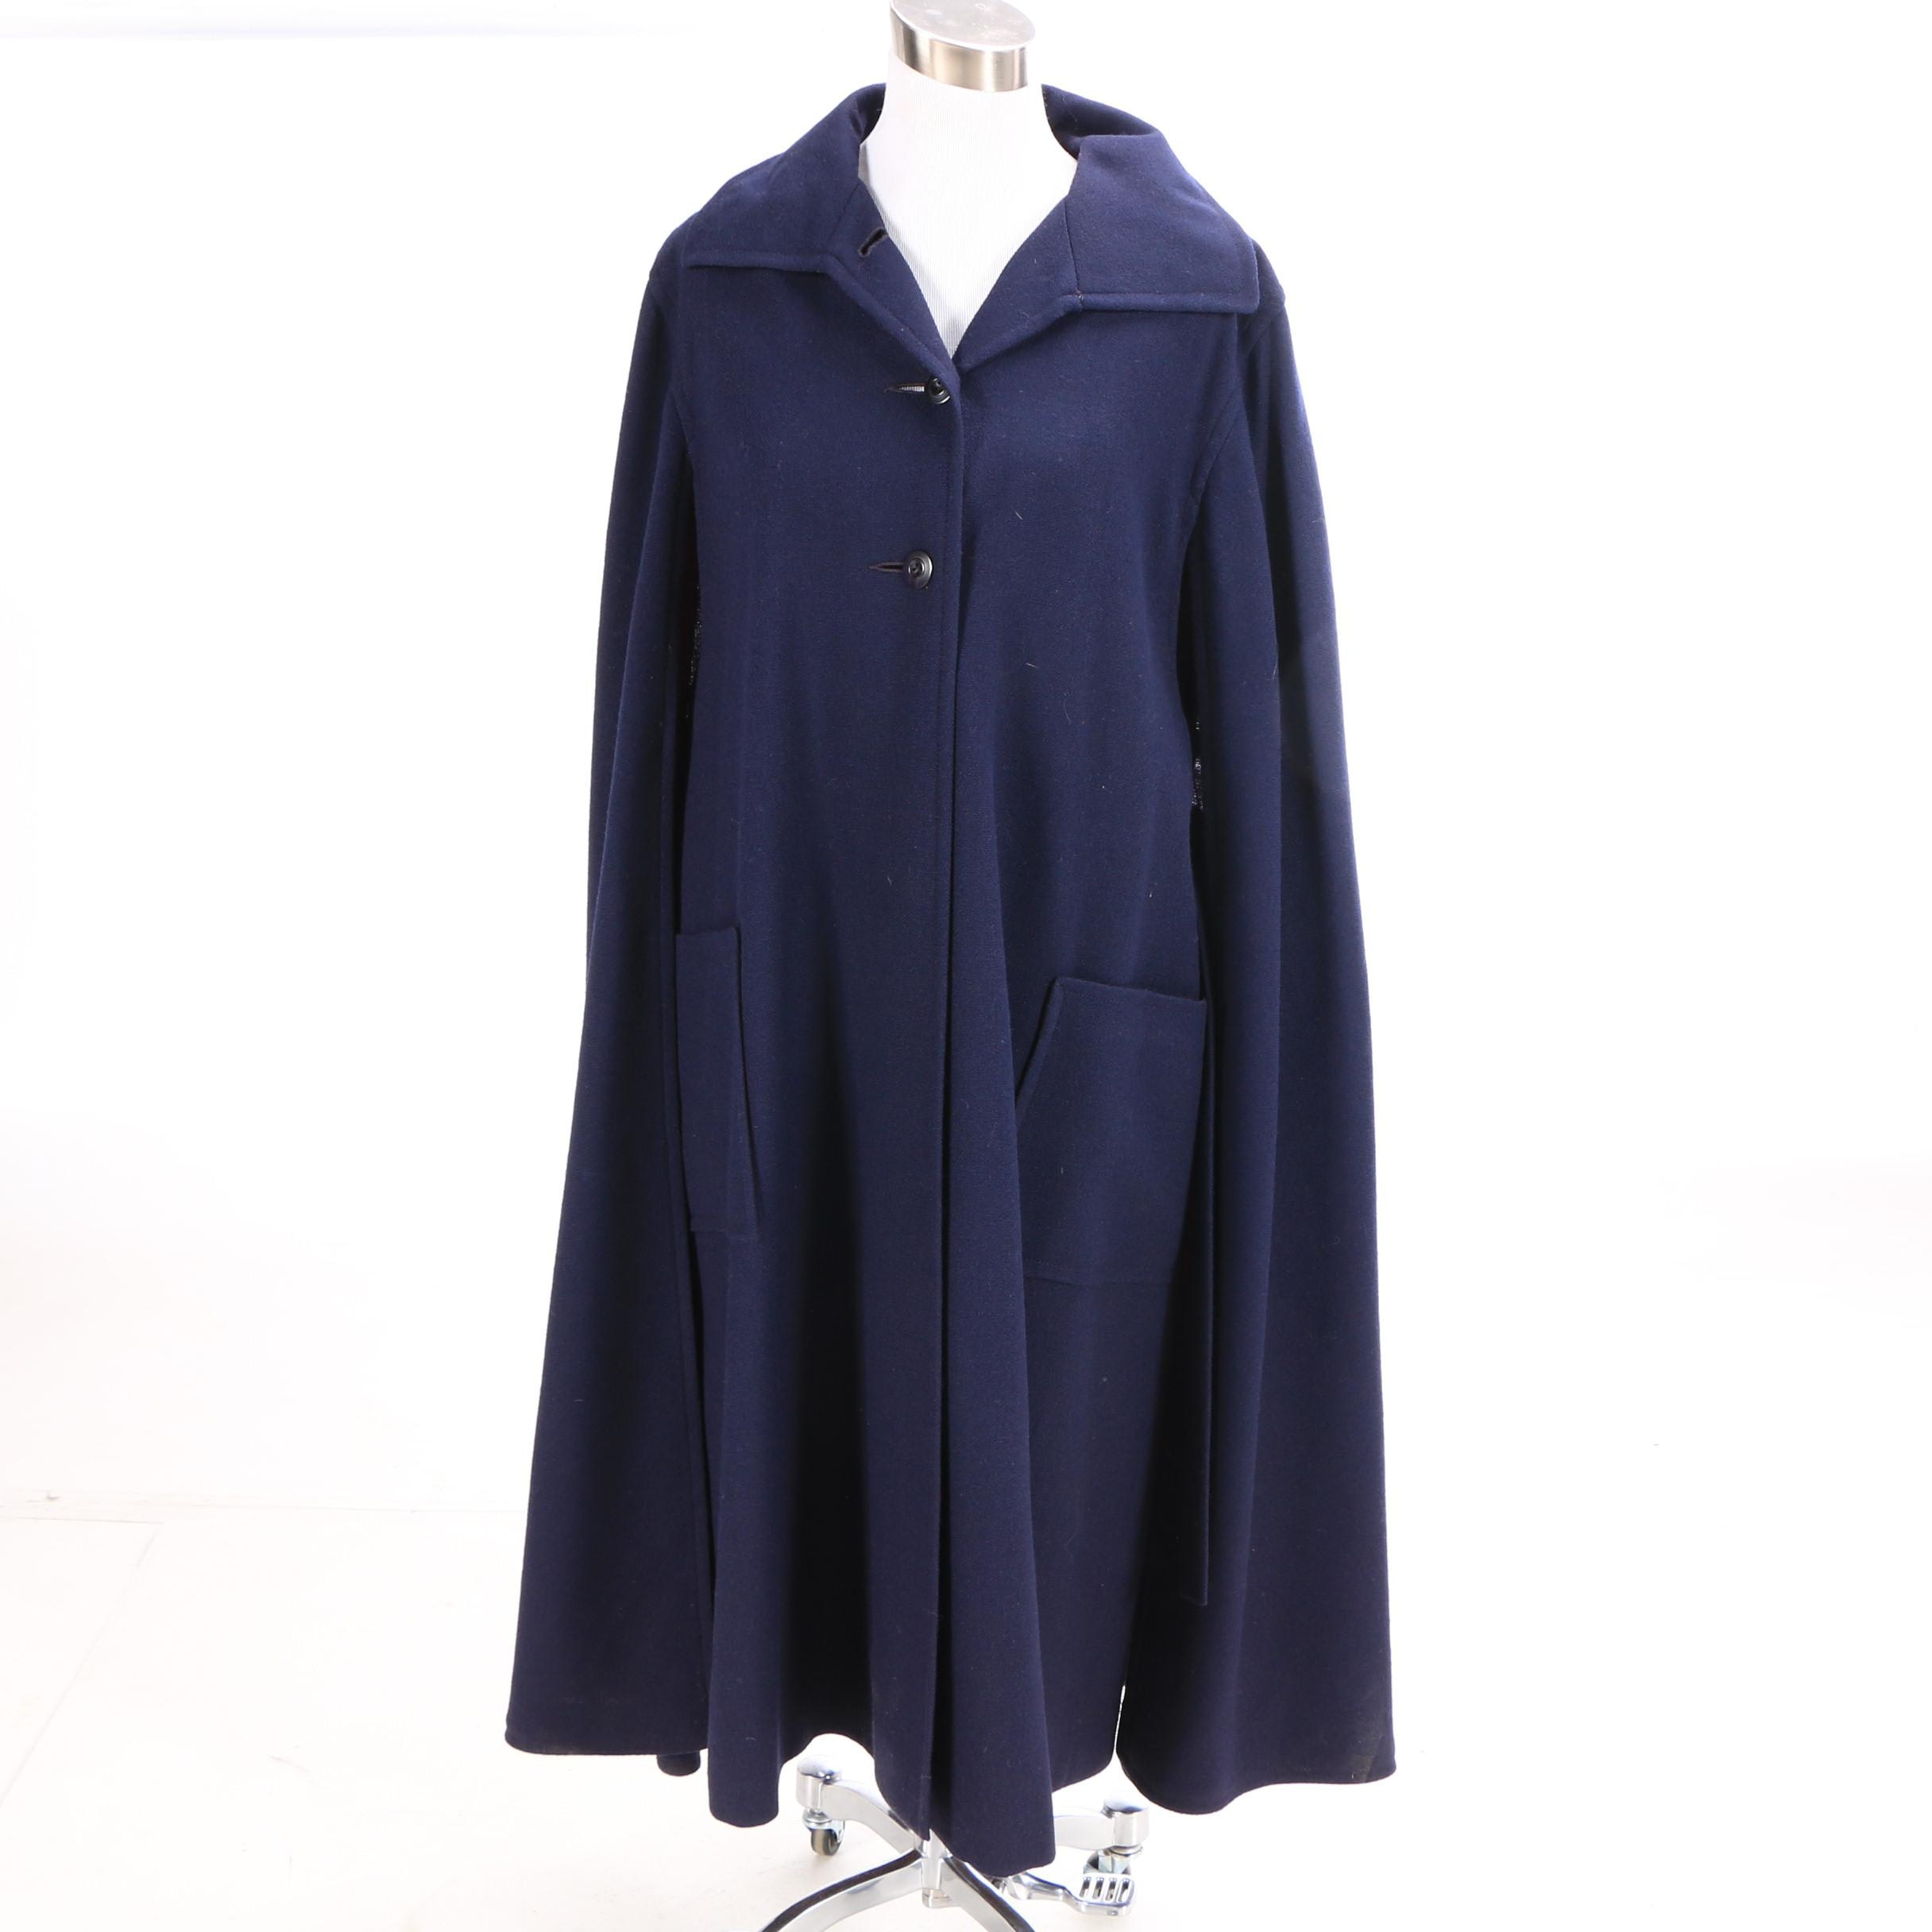 Vintage Raleighs of Washington Navy Blue Cape Coat